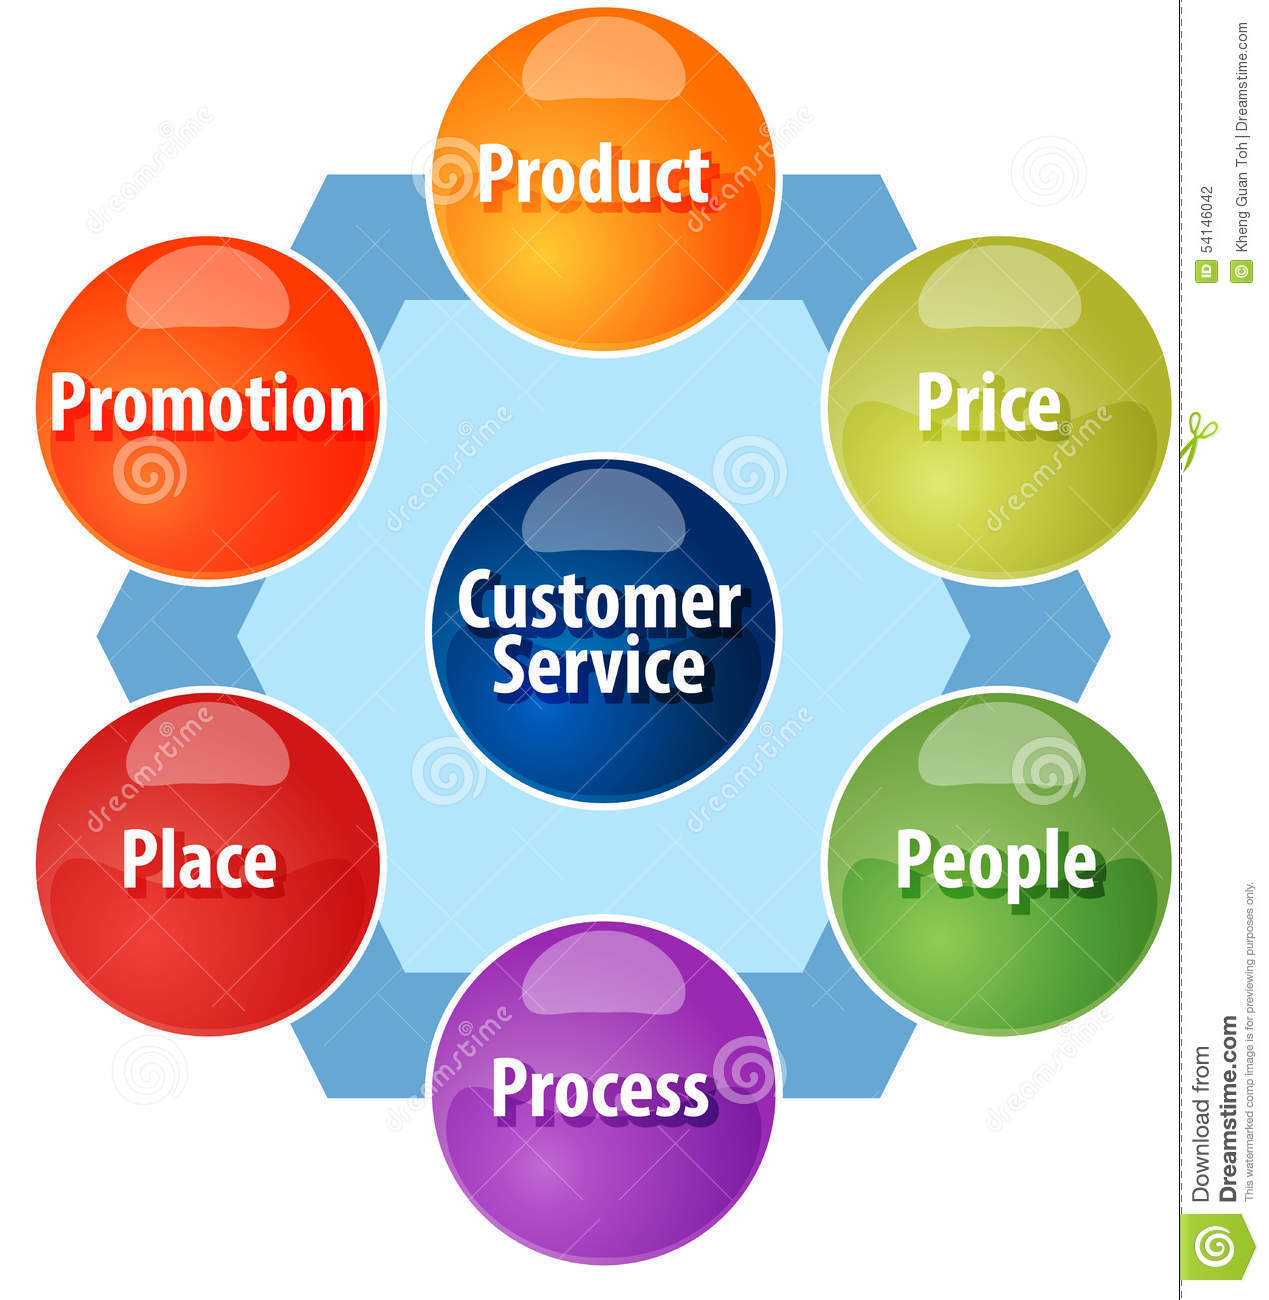 The Importance of Marketing Mix!